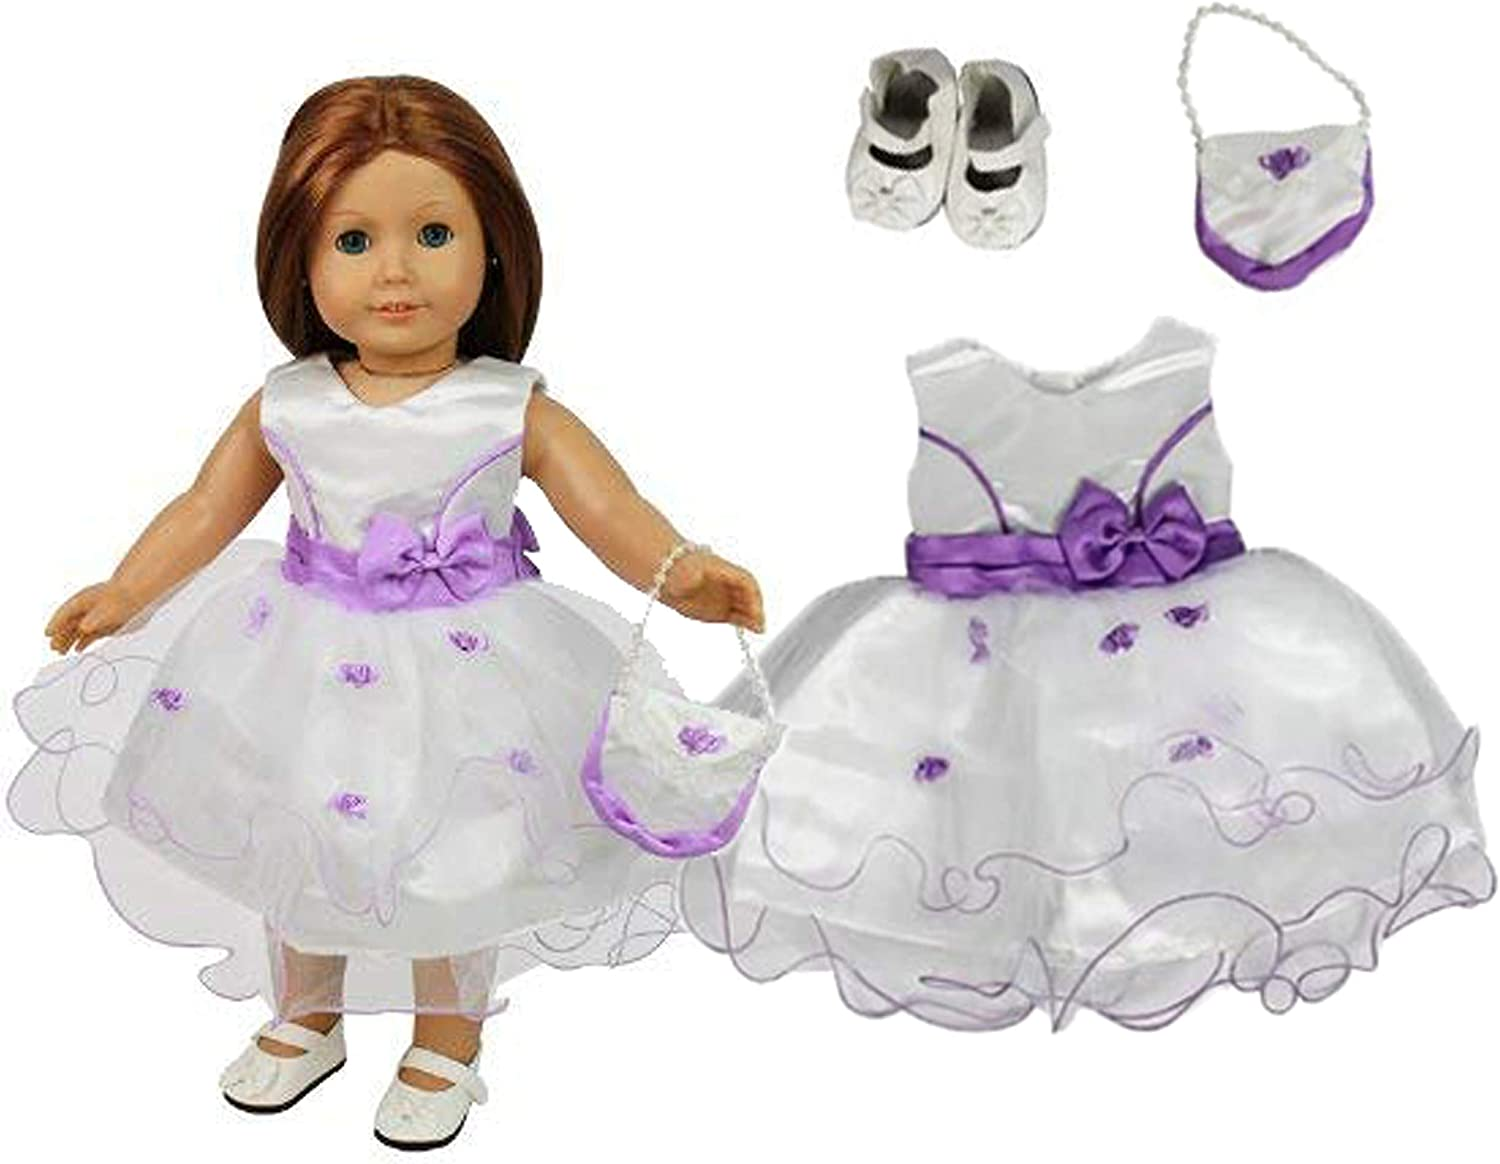 Amazon Com Flower Girl Doll Outfit For American Girl 18 Dolls 3 Piece Set Premium Handmade Wedding Clothes Include Dress Purse Shoes Toys Games